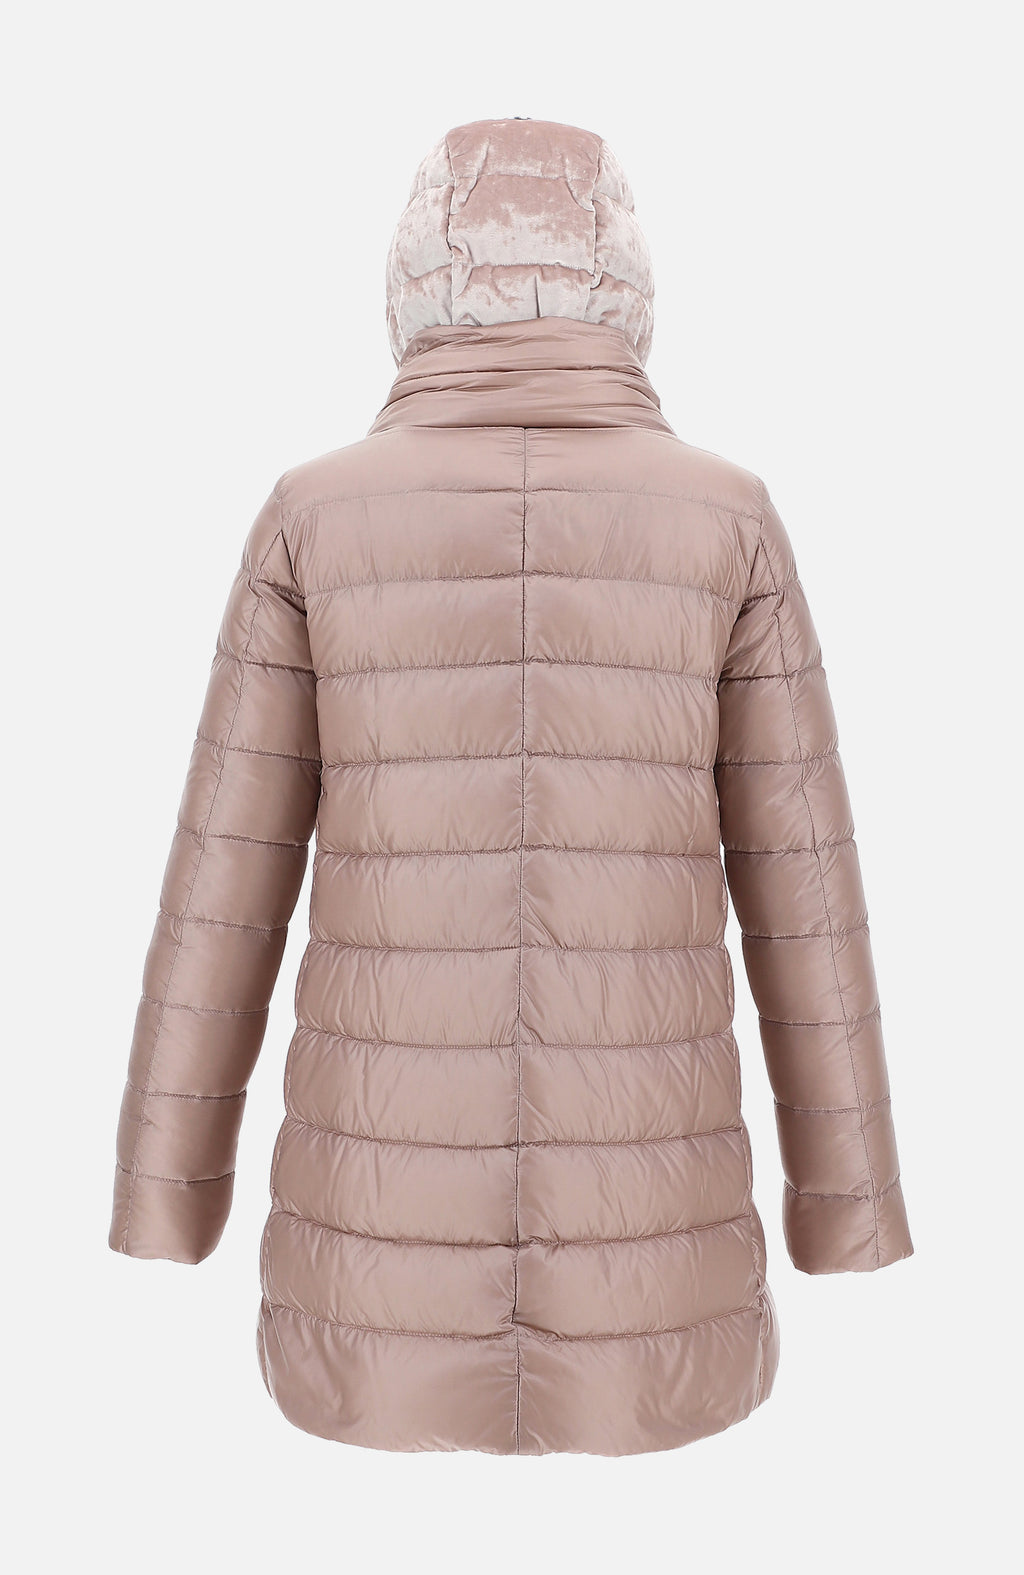 Herno Pink Ultralight A-Shape Puffer Jacket